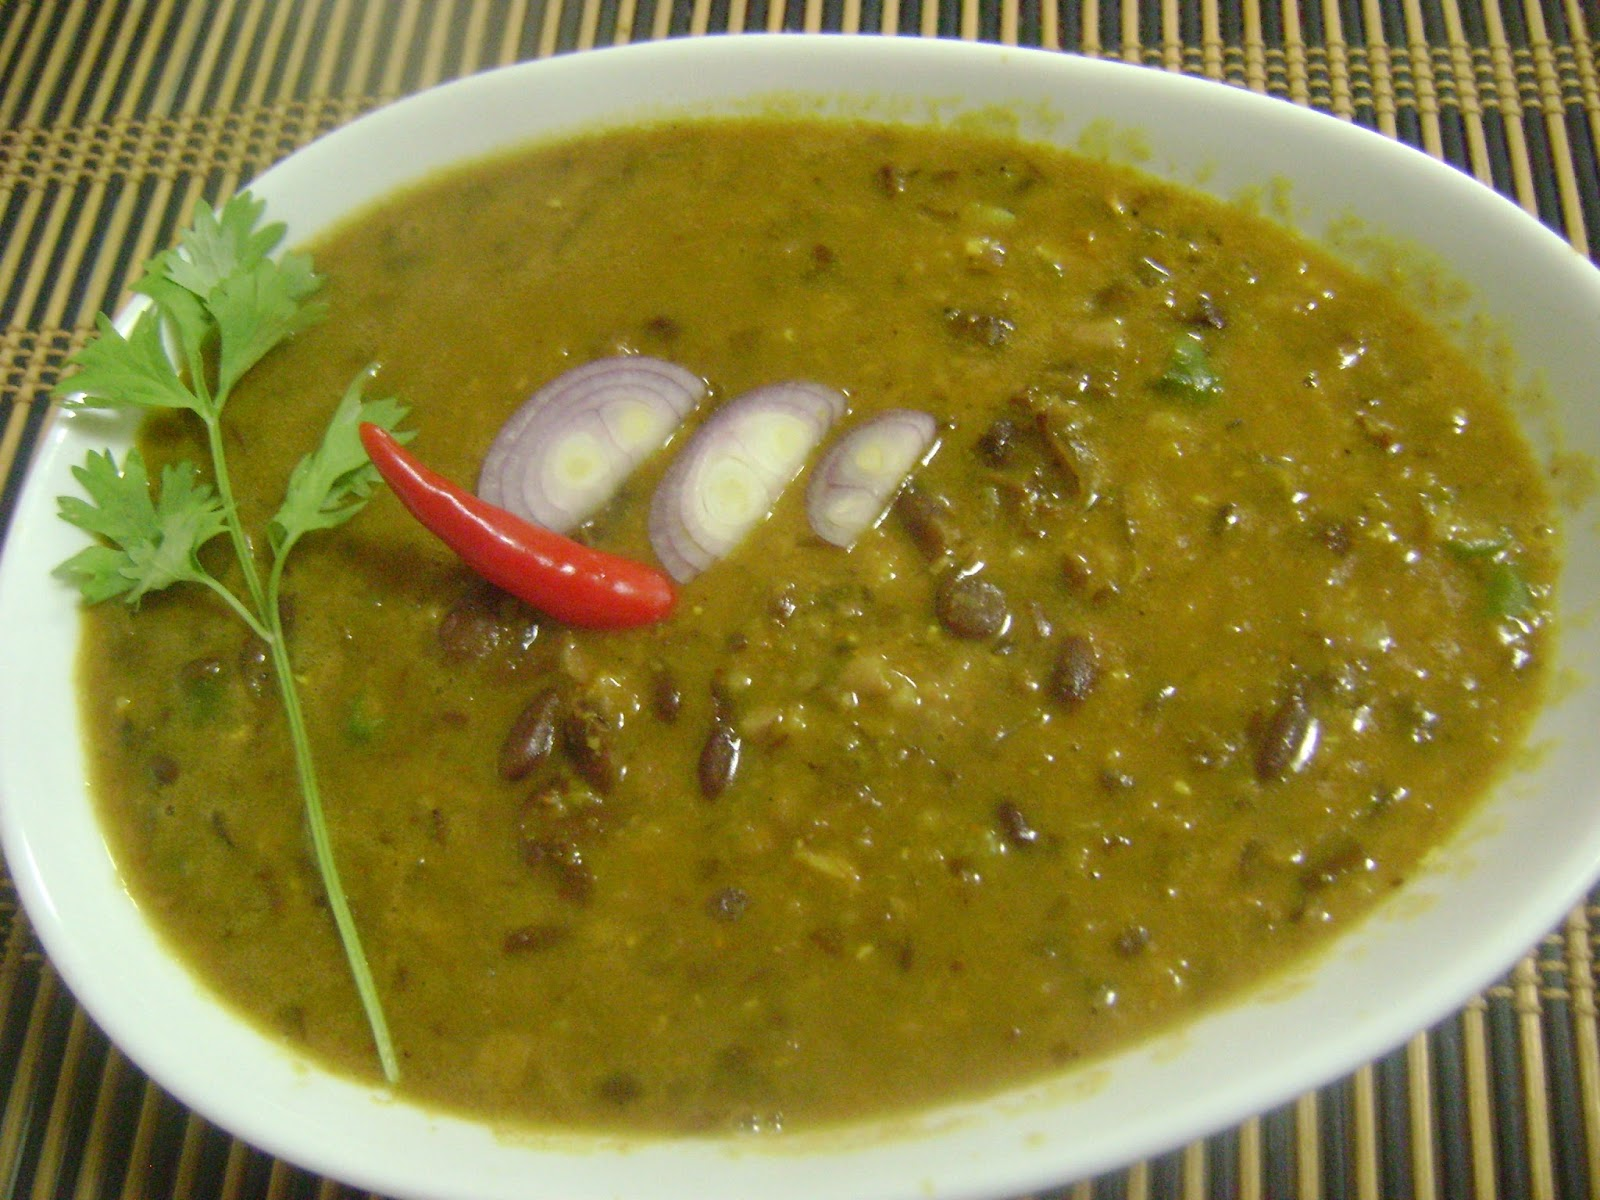 Bethicas kitchen flavours rajma with masoor dal kidney beans rajma with masoor dal kidney beans red lentils curry north indian style forumfinder Gallery